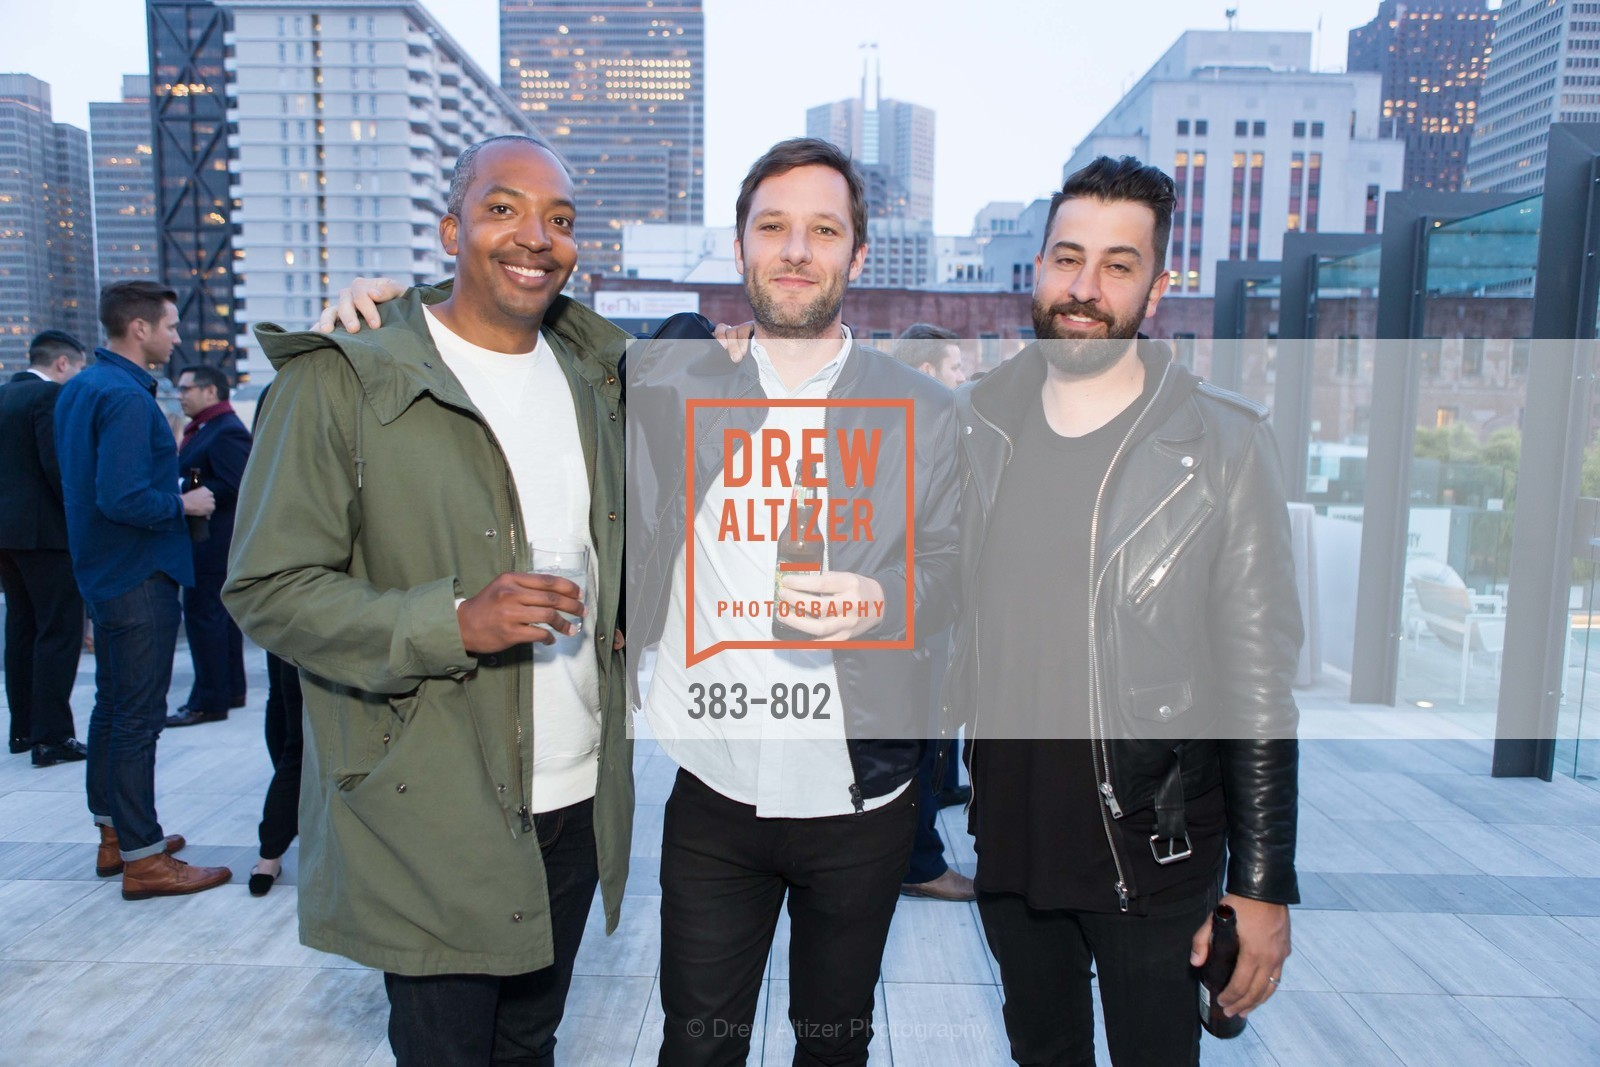 David Sullivan, Zach Kenfield, Brian Fermosa, MR PORTER Celebrate The San Francisco Issue of The Journal, US, April 24th, 2015,Drew Altizer, Drew Altizer Photography, full-service agency, private events, San Francisco photographer, photographer california